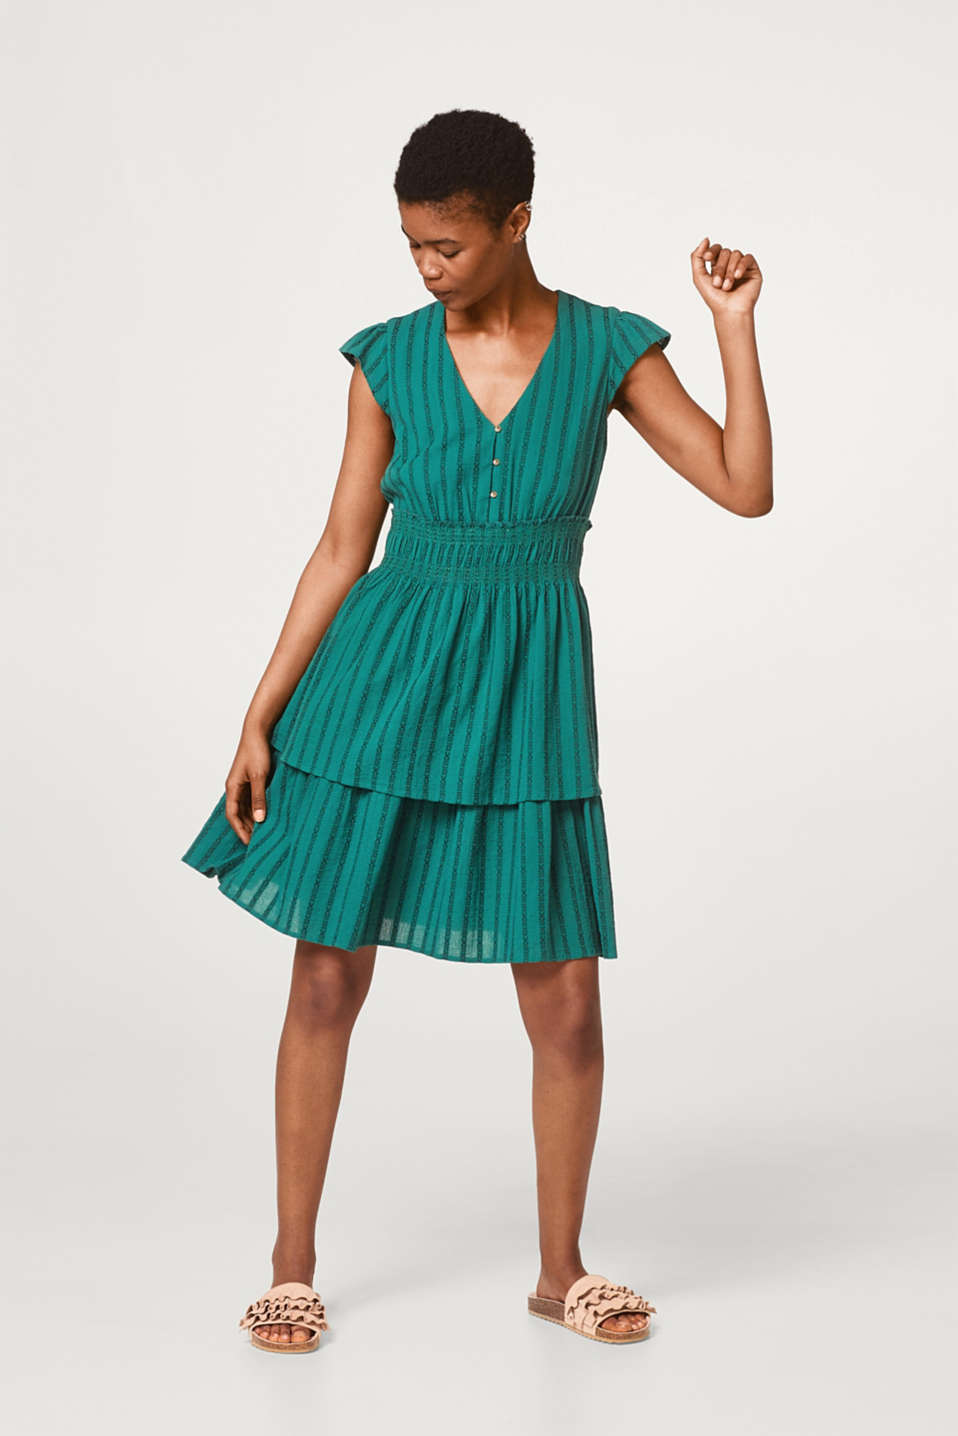 Dress with textured jacquard stripes